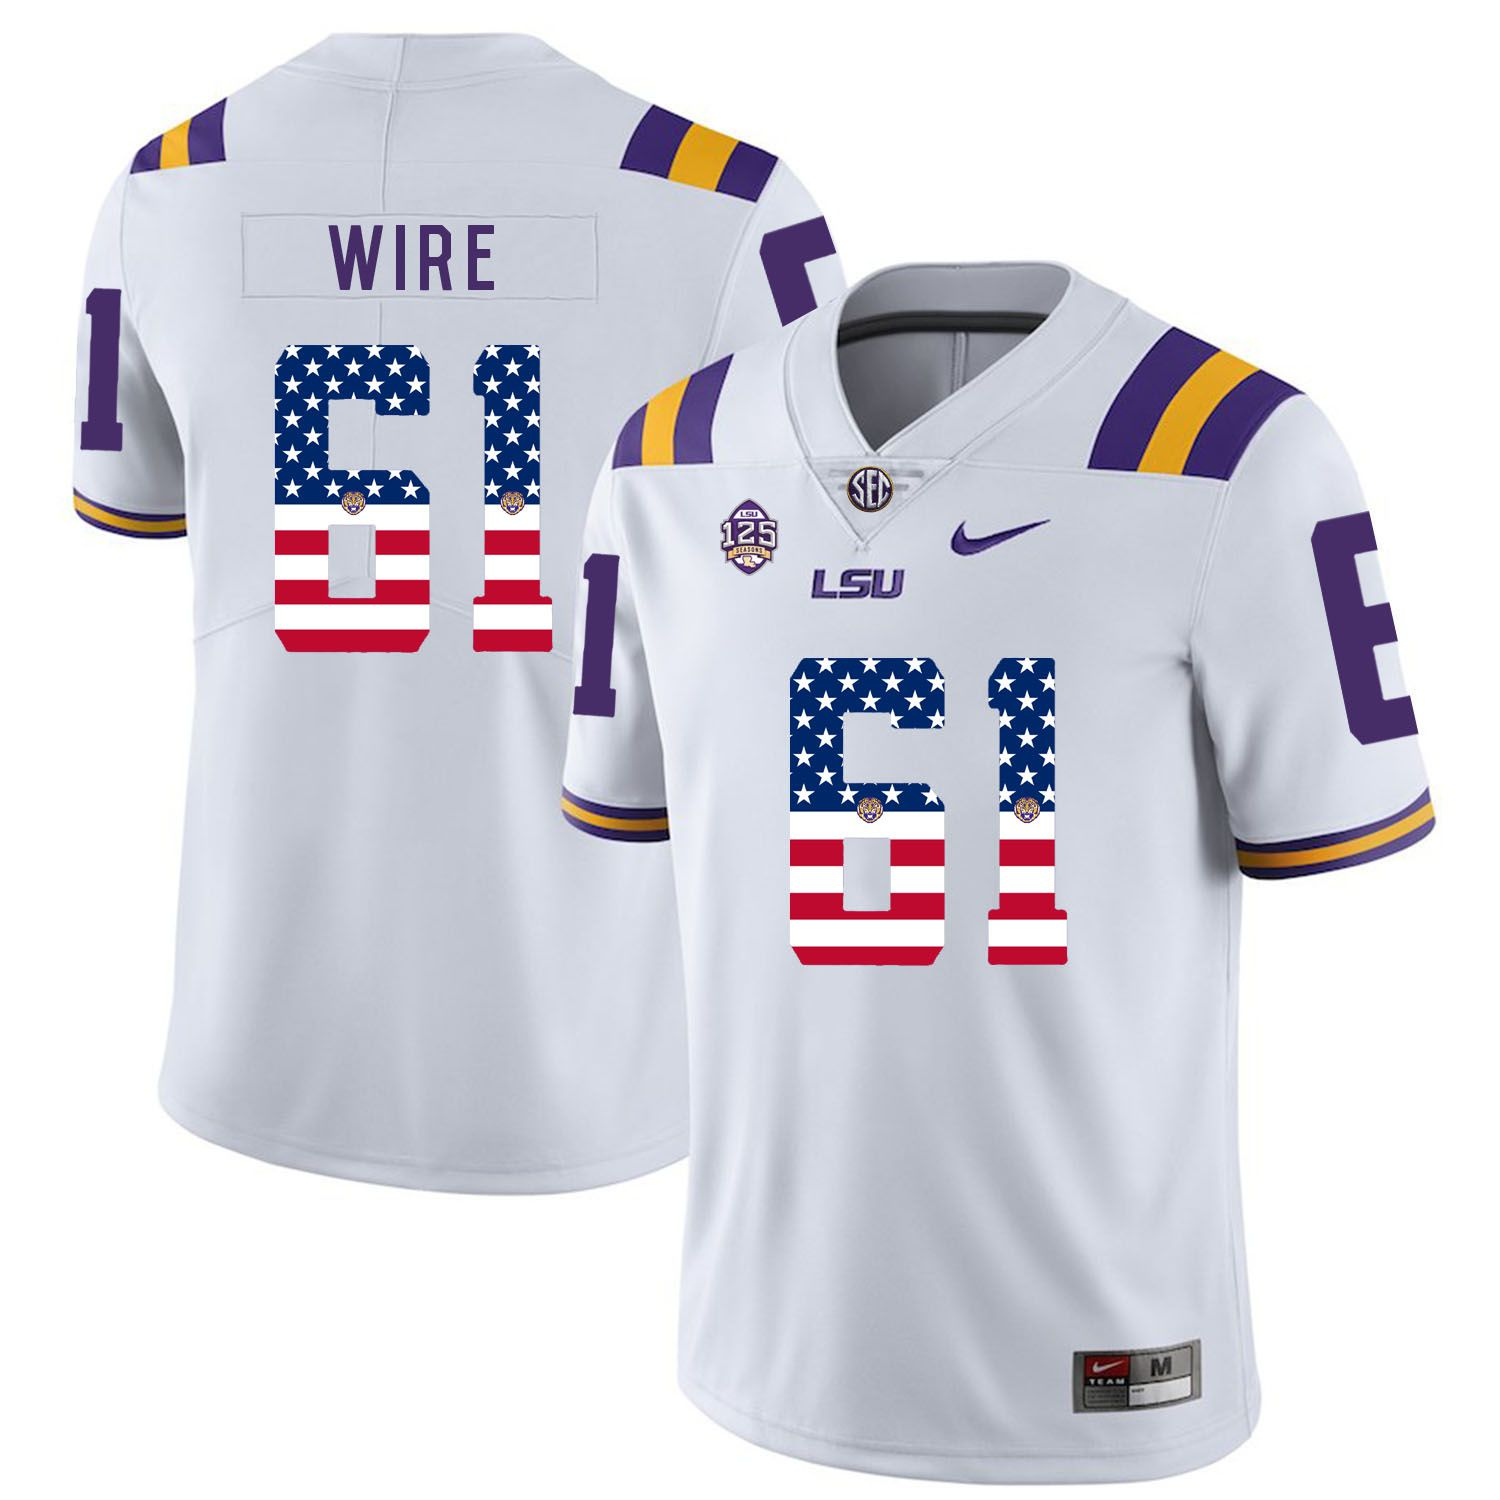 Men LSU Tigers 61 Wire White Flag Customized NCAA Jerseys